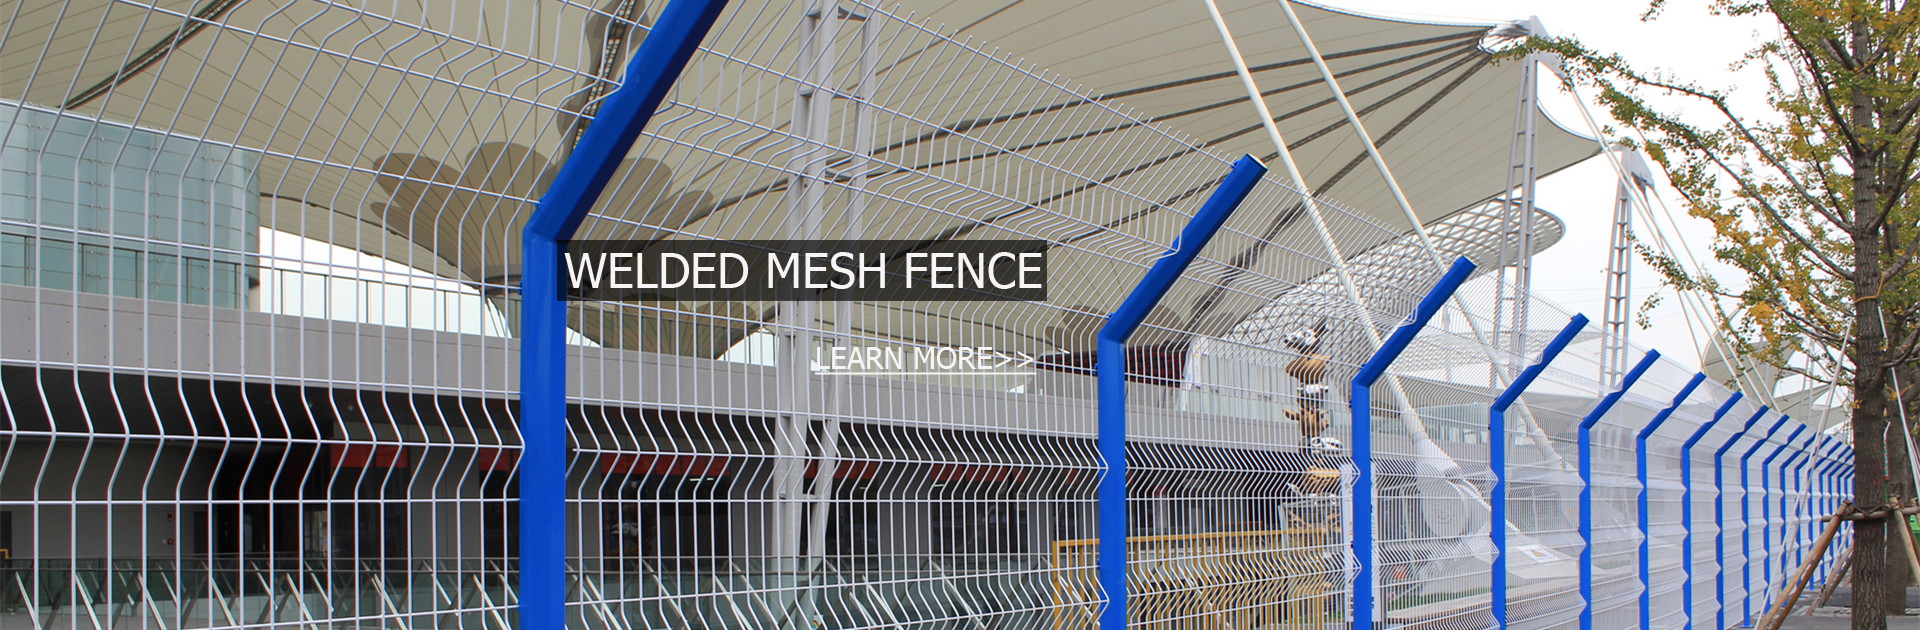 Wire Mesh Security Fence - HUXING WIRE MESH